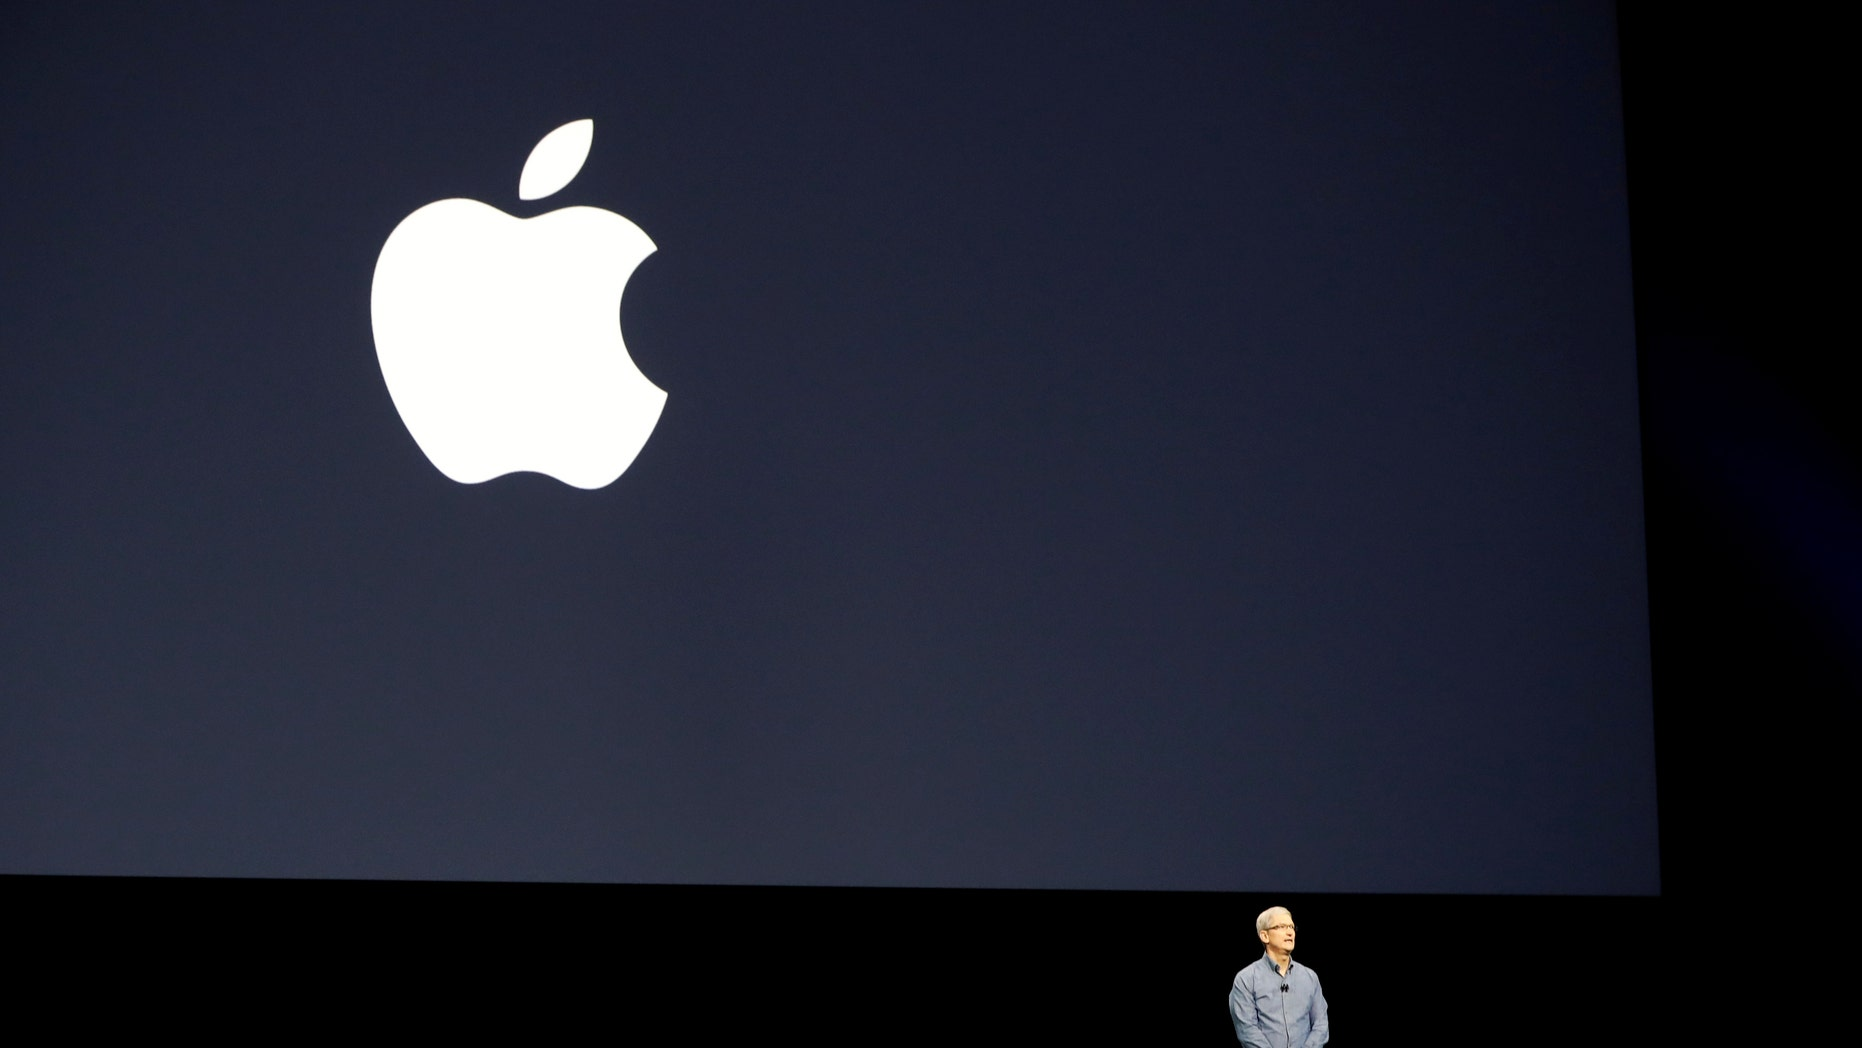 Apple Inc. CEO Tim Cook leads a moment of silence for the victims of the attack in Orlando as he opens the company's World Wide Developers Conference in San Francisco, California June 13, 2016. (REUTERS/Stephen Lam)